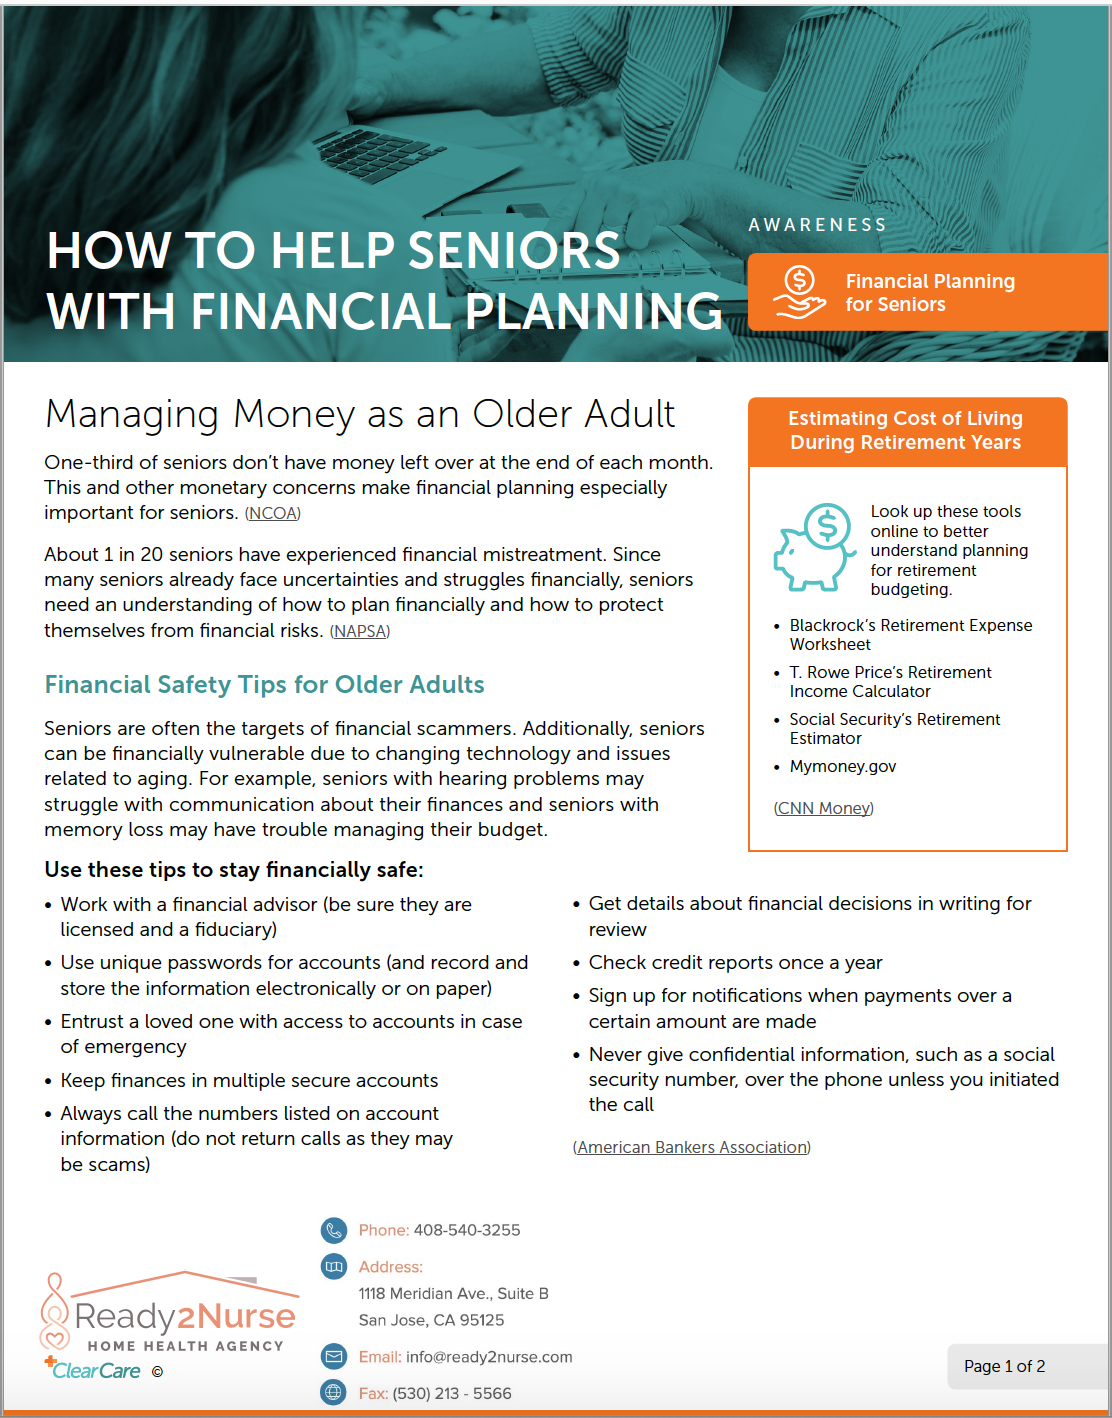 How to Help Seniors with Financial Planning